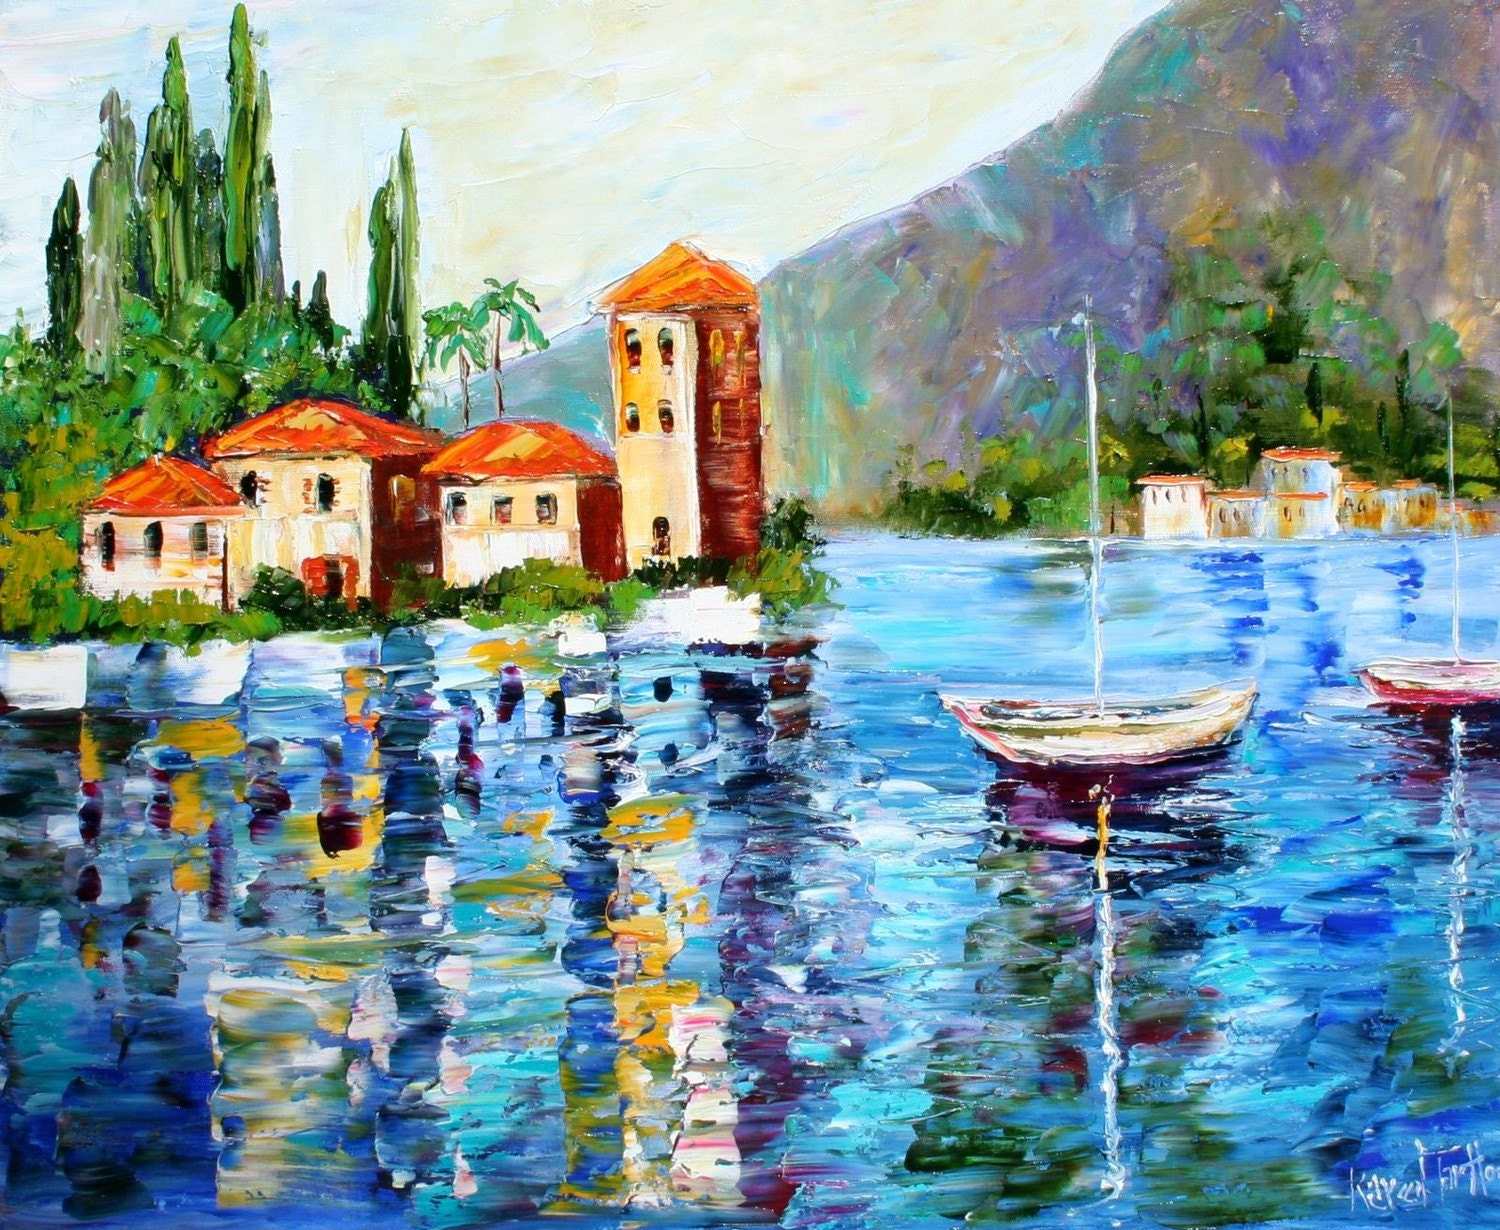 Karen Tarlton Original Oil Painting Lake Como Italy